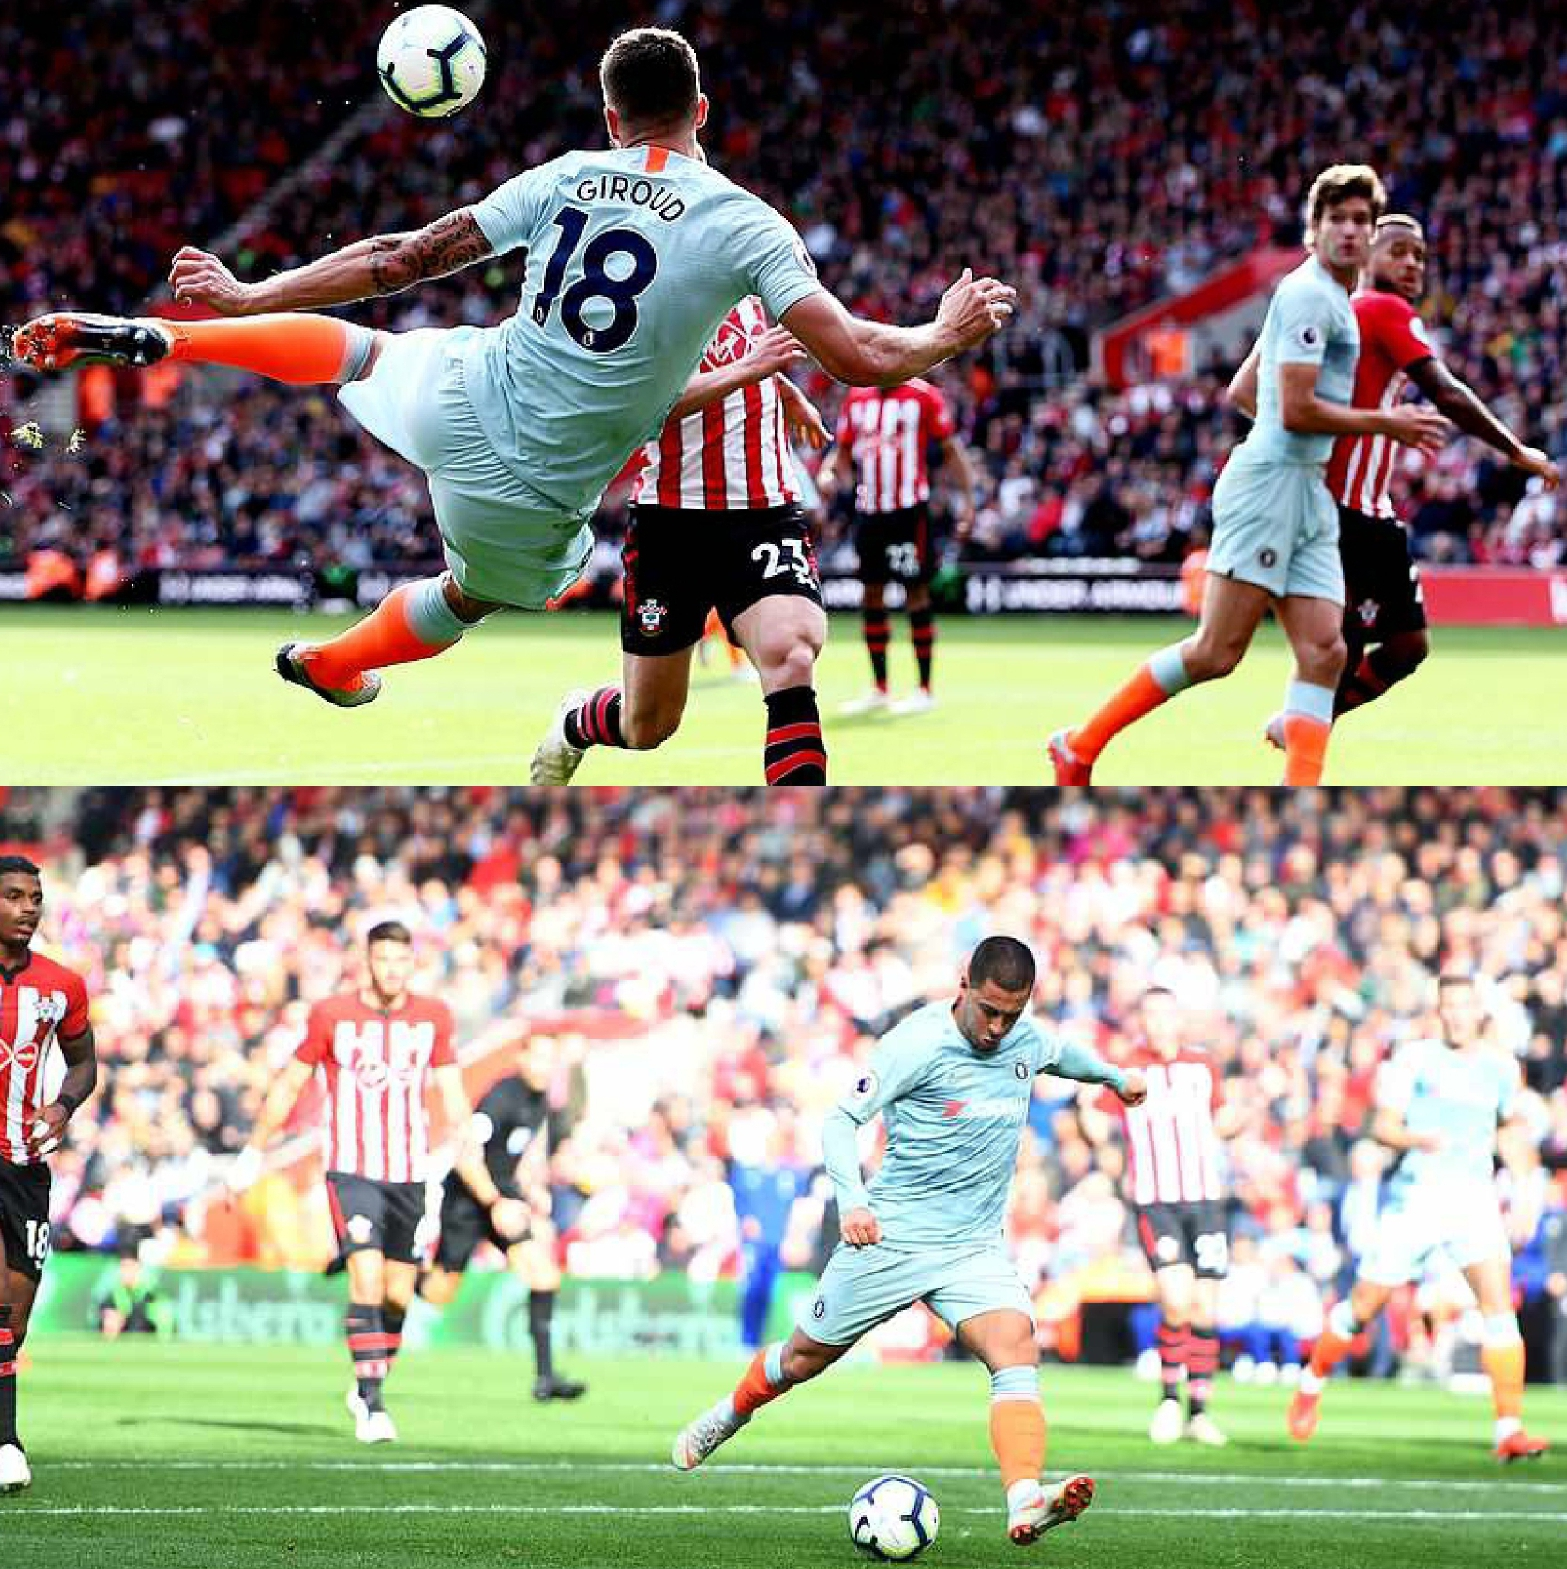 Moses Absent As Chelsea Spank Southampton 3-0 To Extend Unbeaten Run